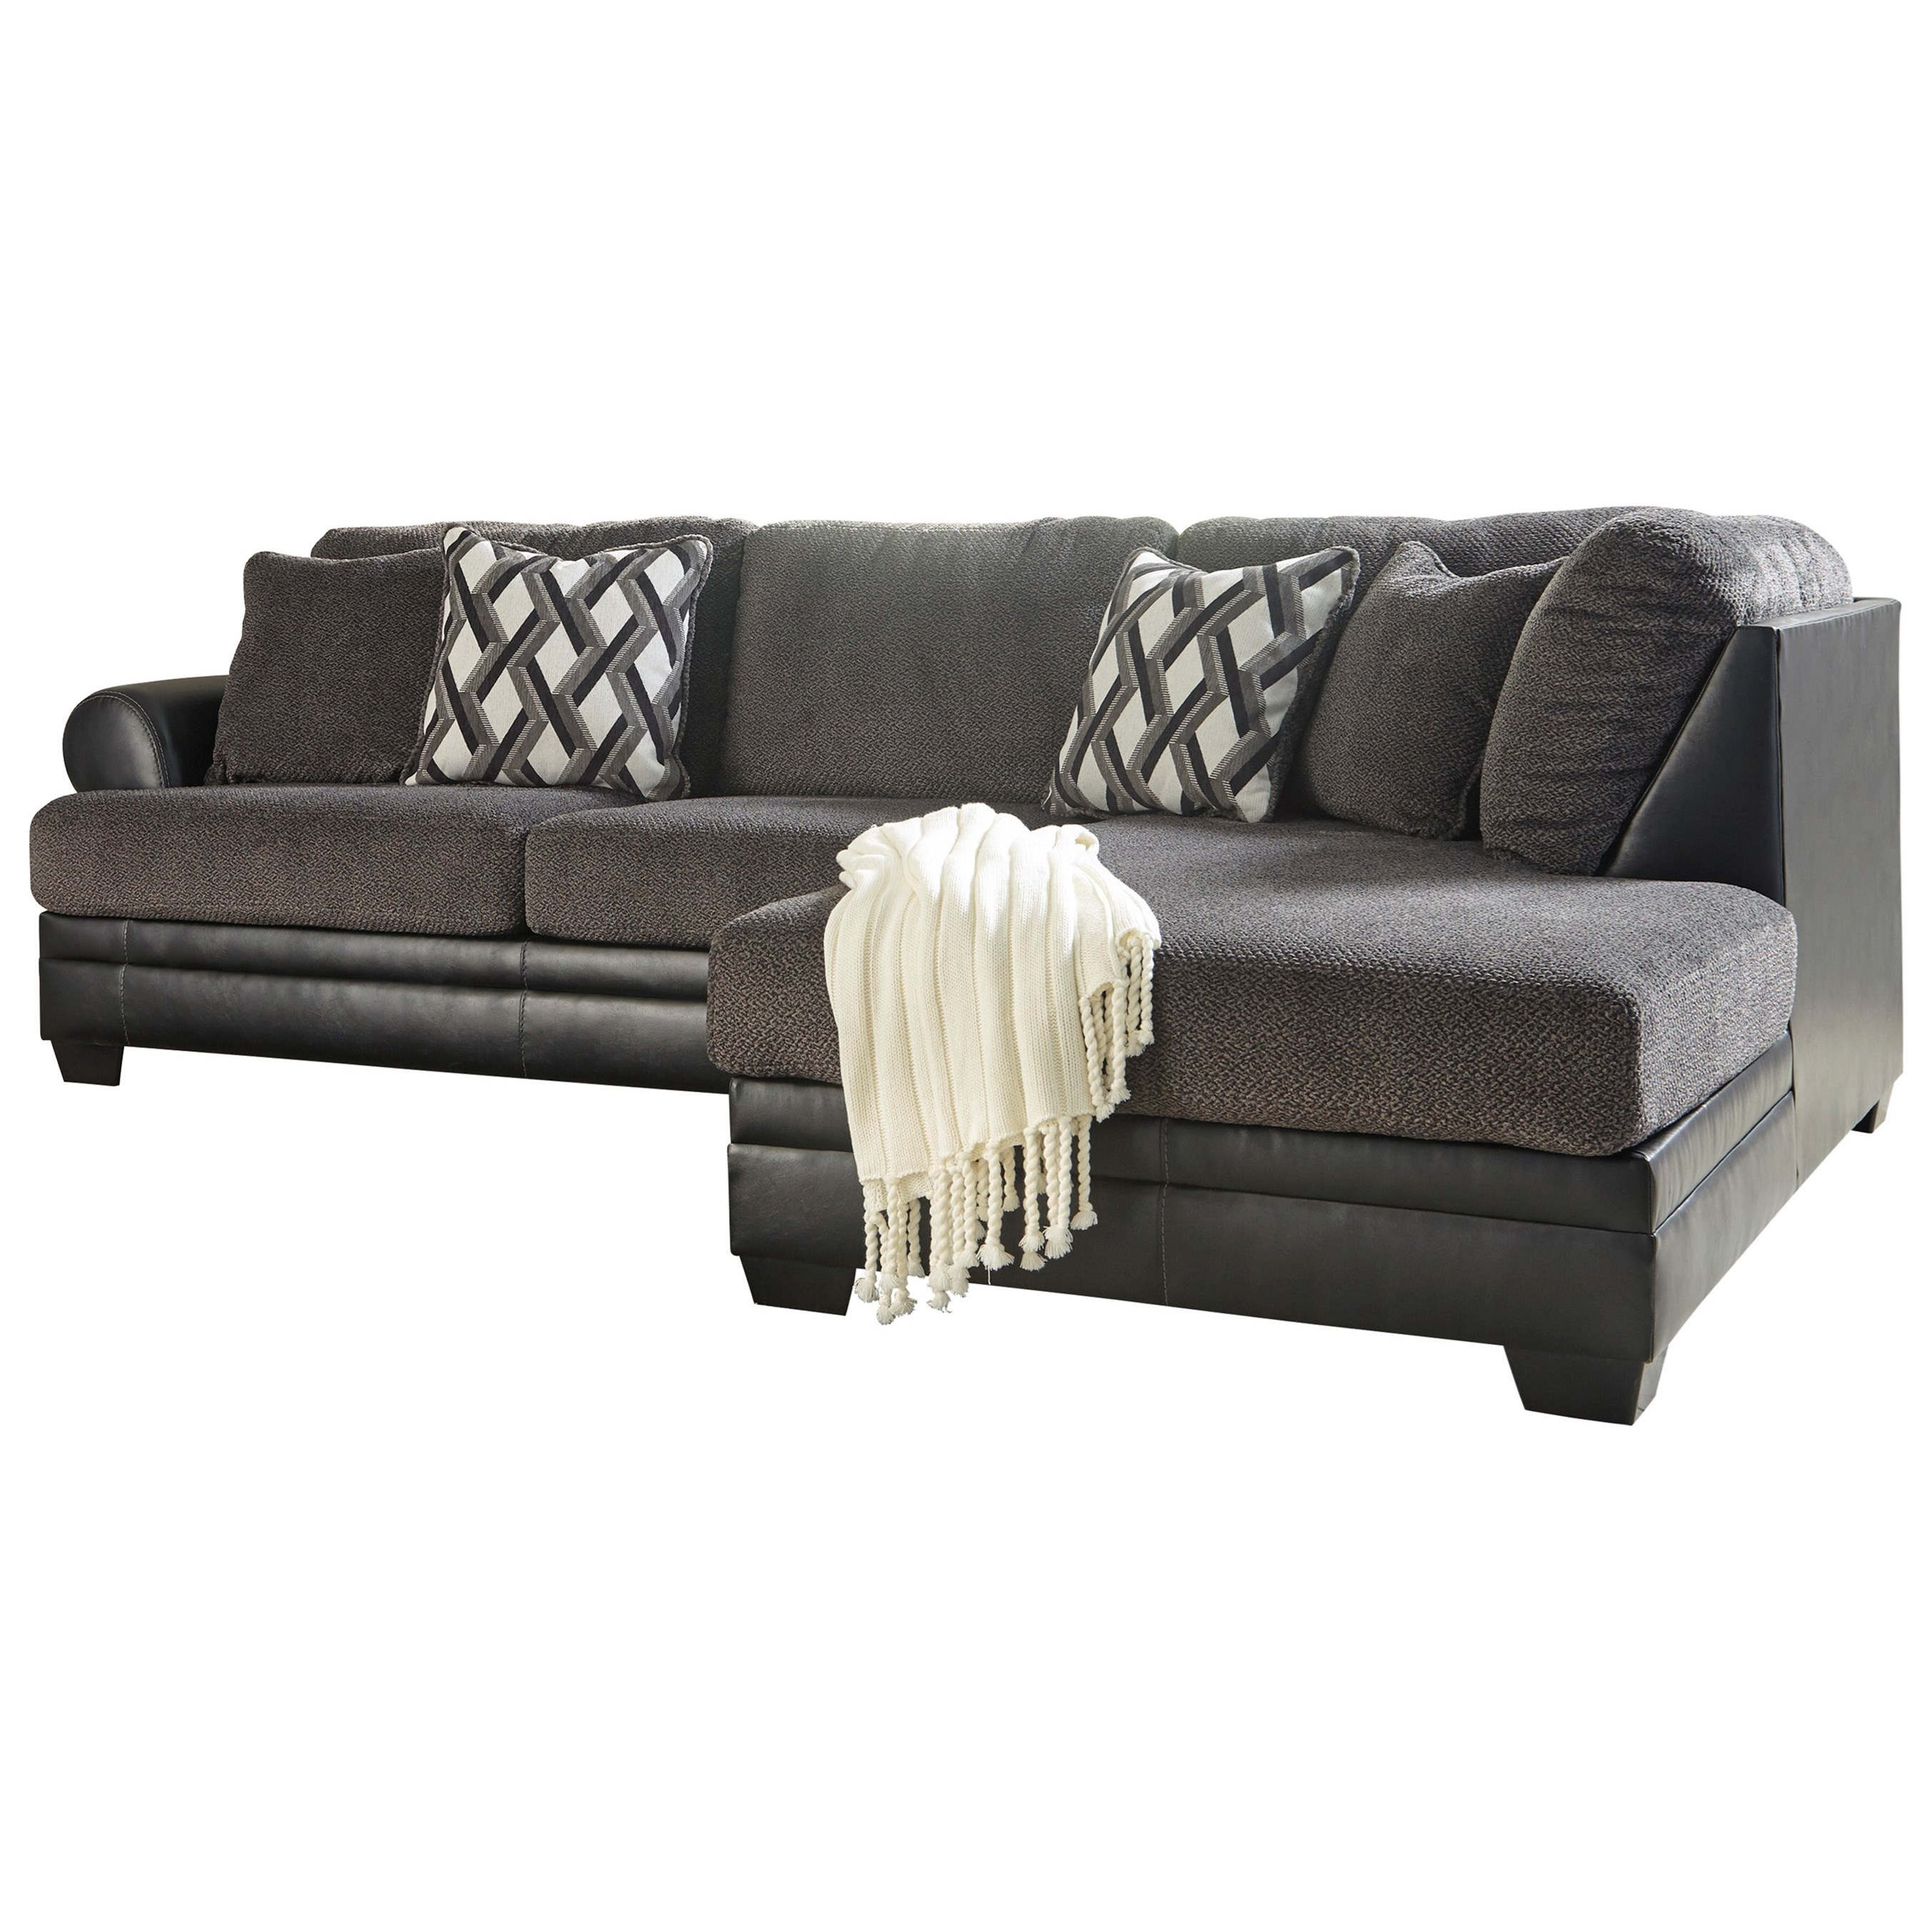 Kumasi 2-Piece Sectional with Chaise by Benchcraft at Rooms and Rest